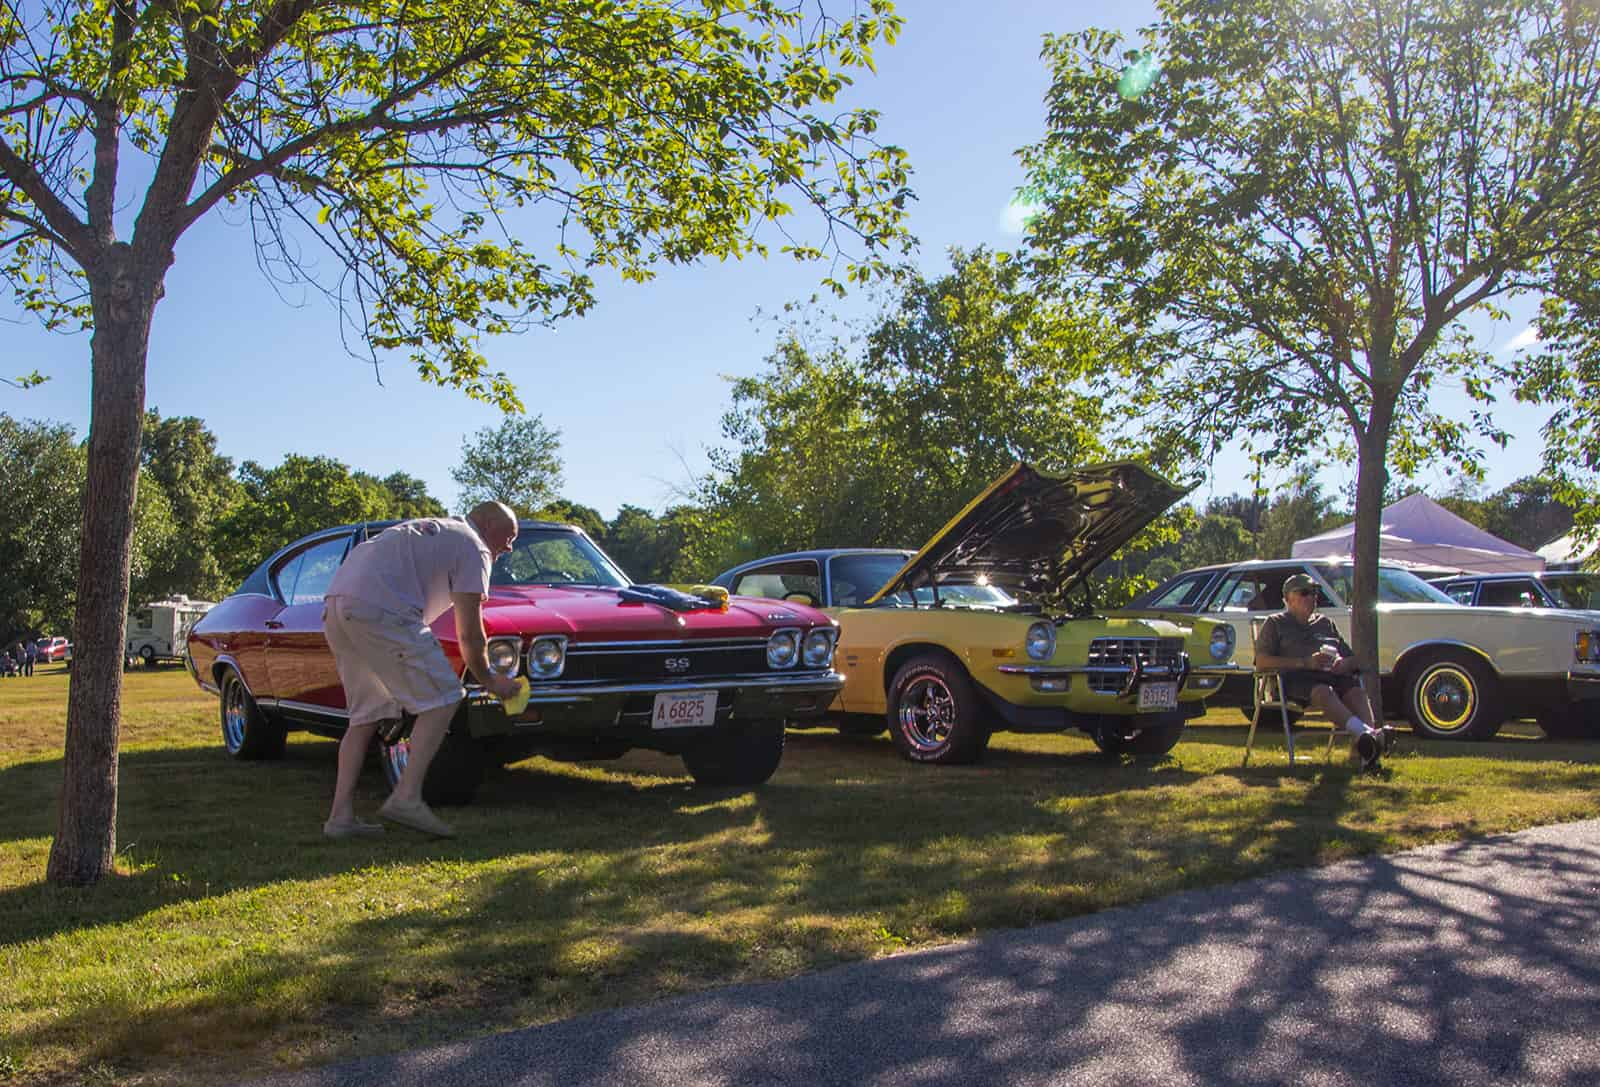 2016 Cars of Summer Car Show, Green Hill Park, Worcester, MA